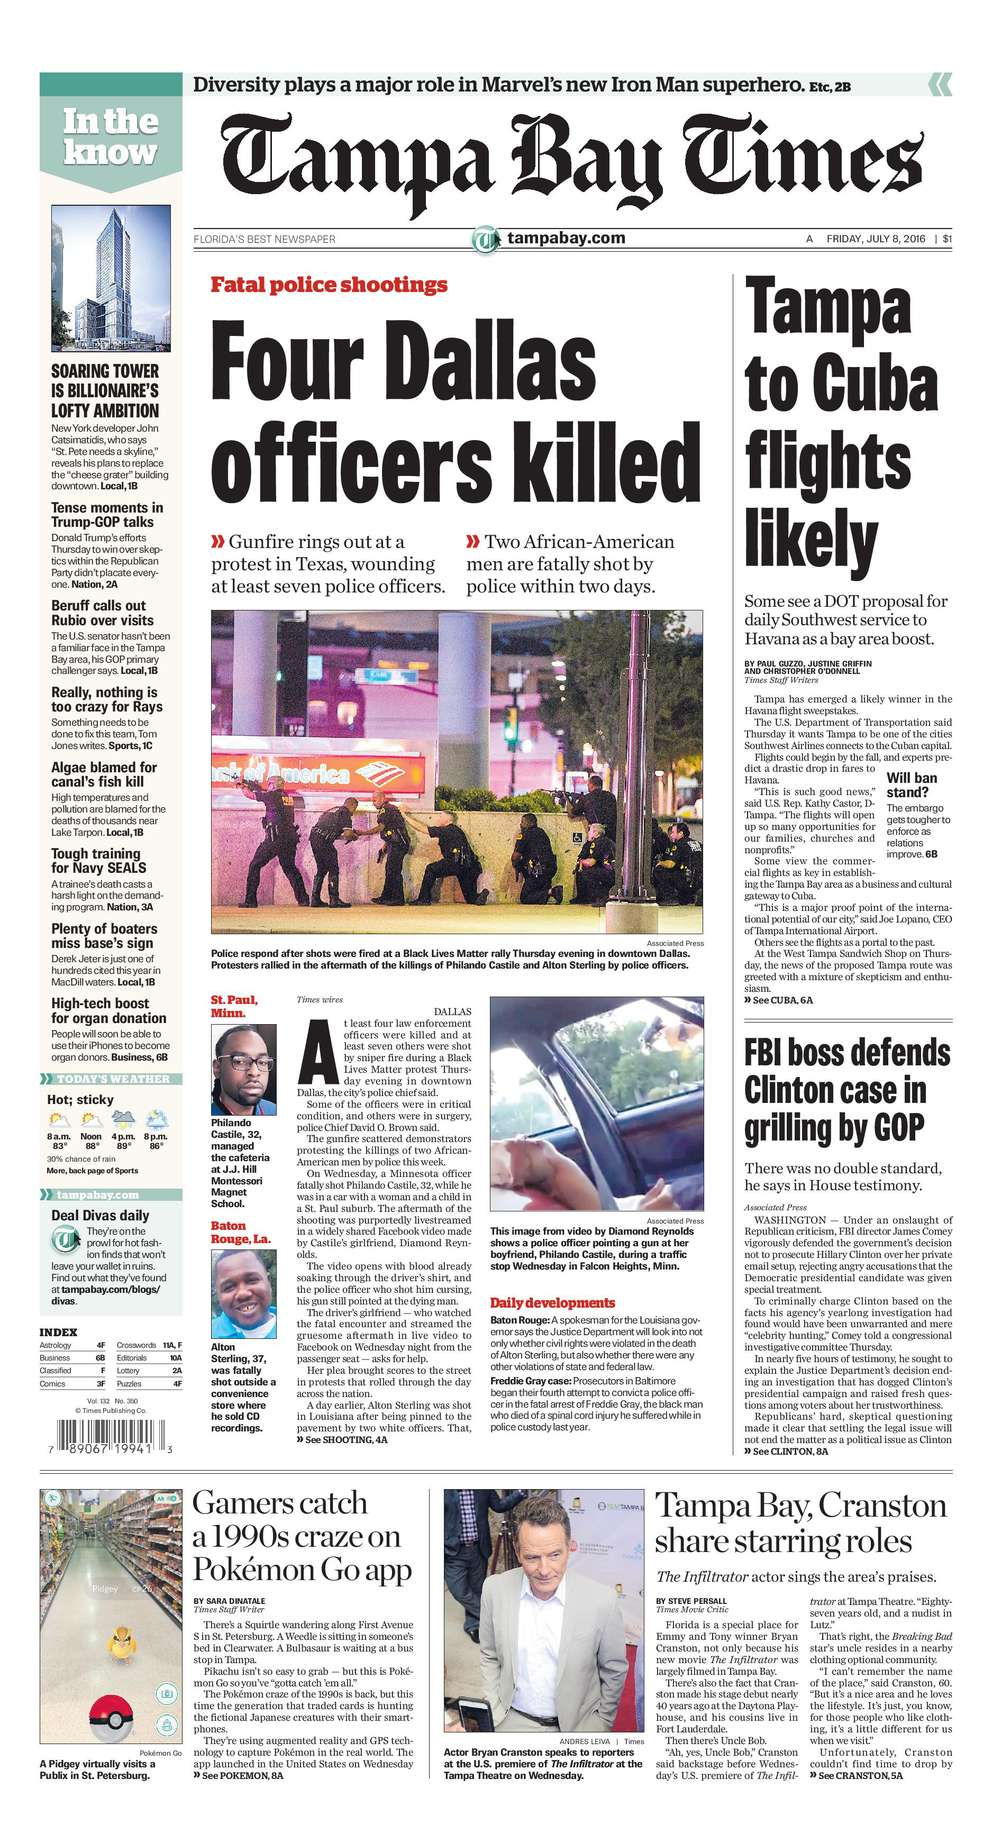 July 7, 2016: Five killed. At the end of a protest in downtown Dallas, five police officers were killed by a gunman who set out to kill white officers. Police later killed the gunman in a standoff using a robot with a remote-controlled explosive.